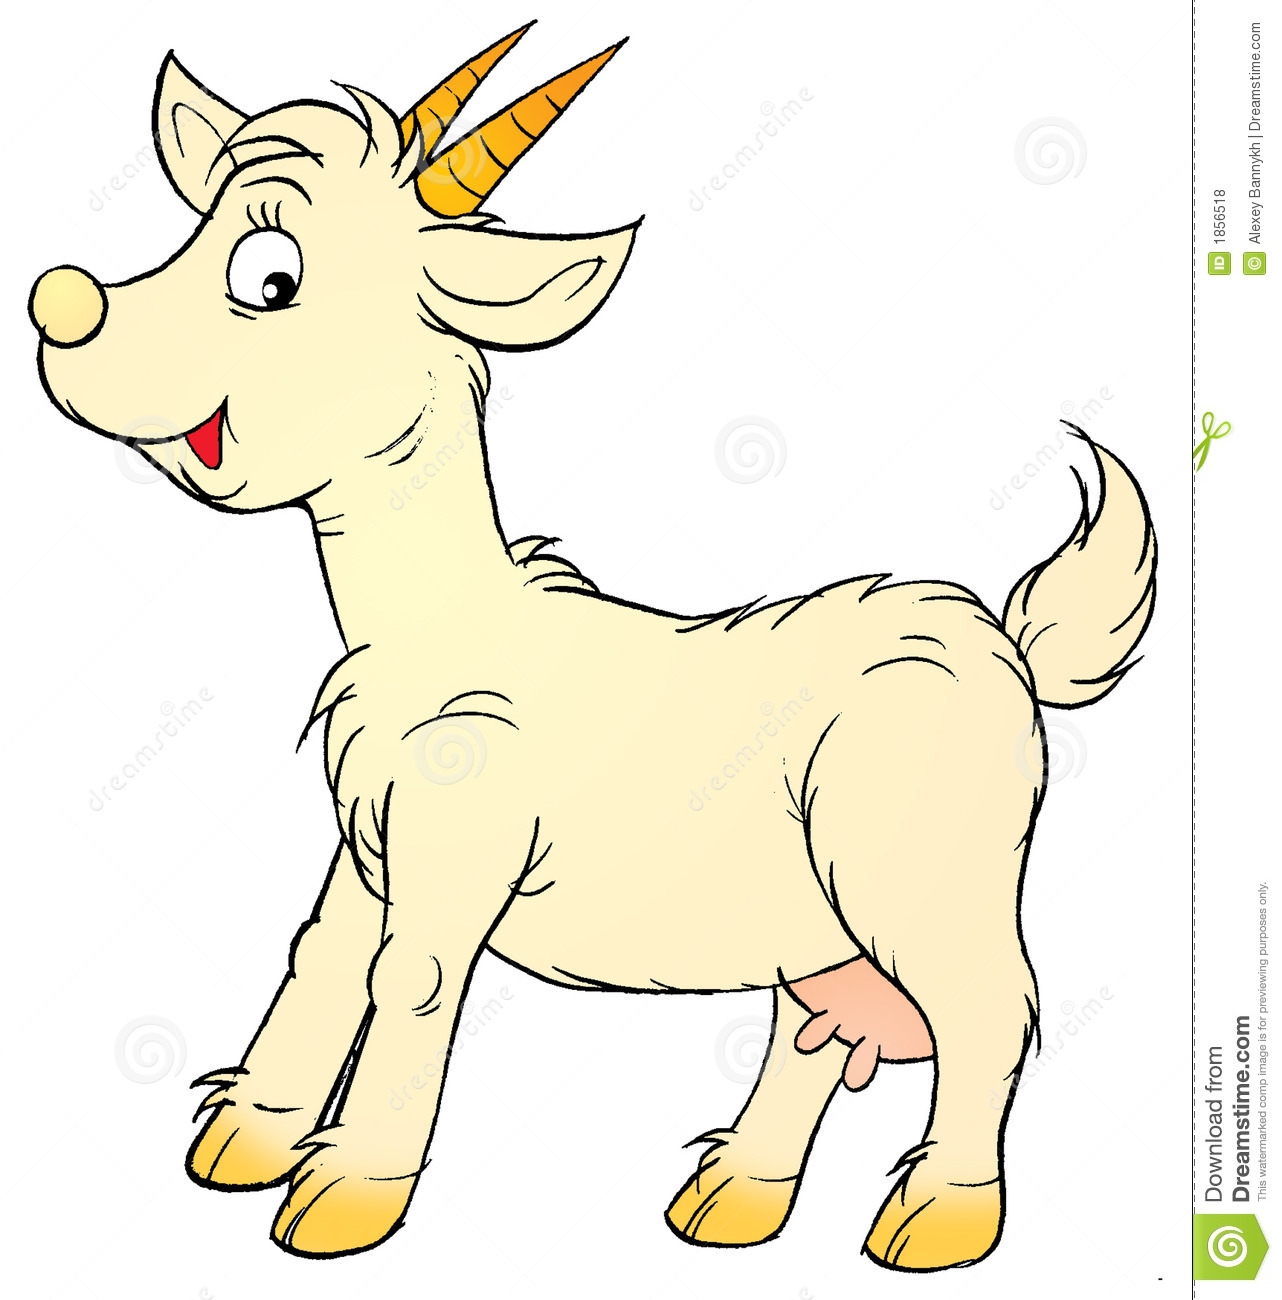 Goat Royalty Free Stock Photos - Image: 1856518